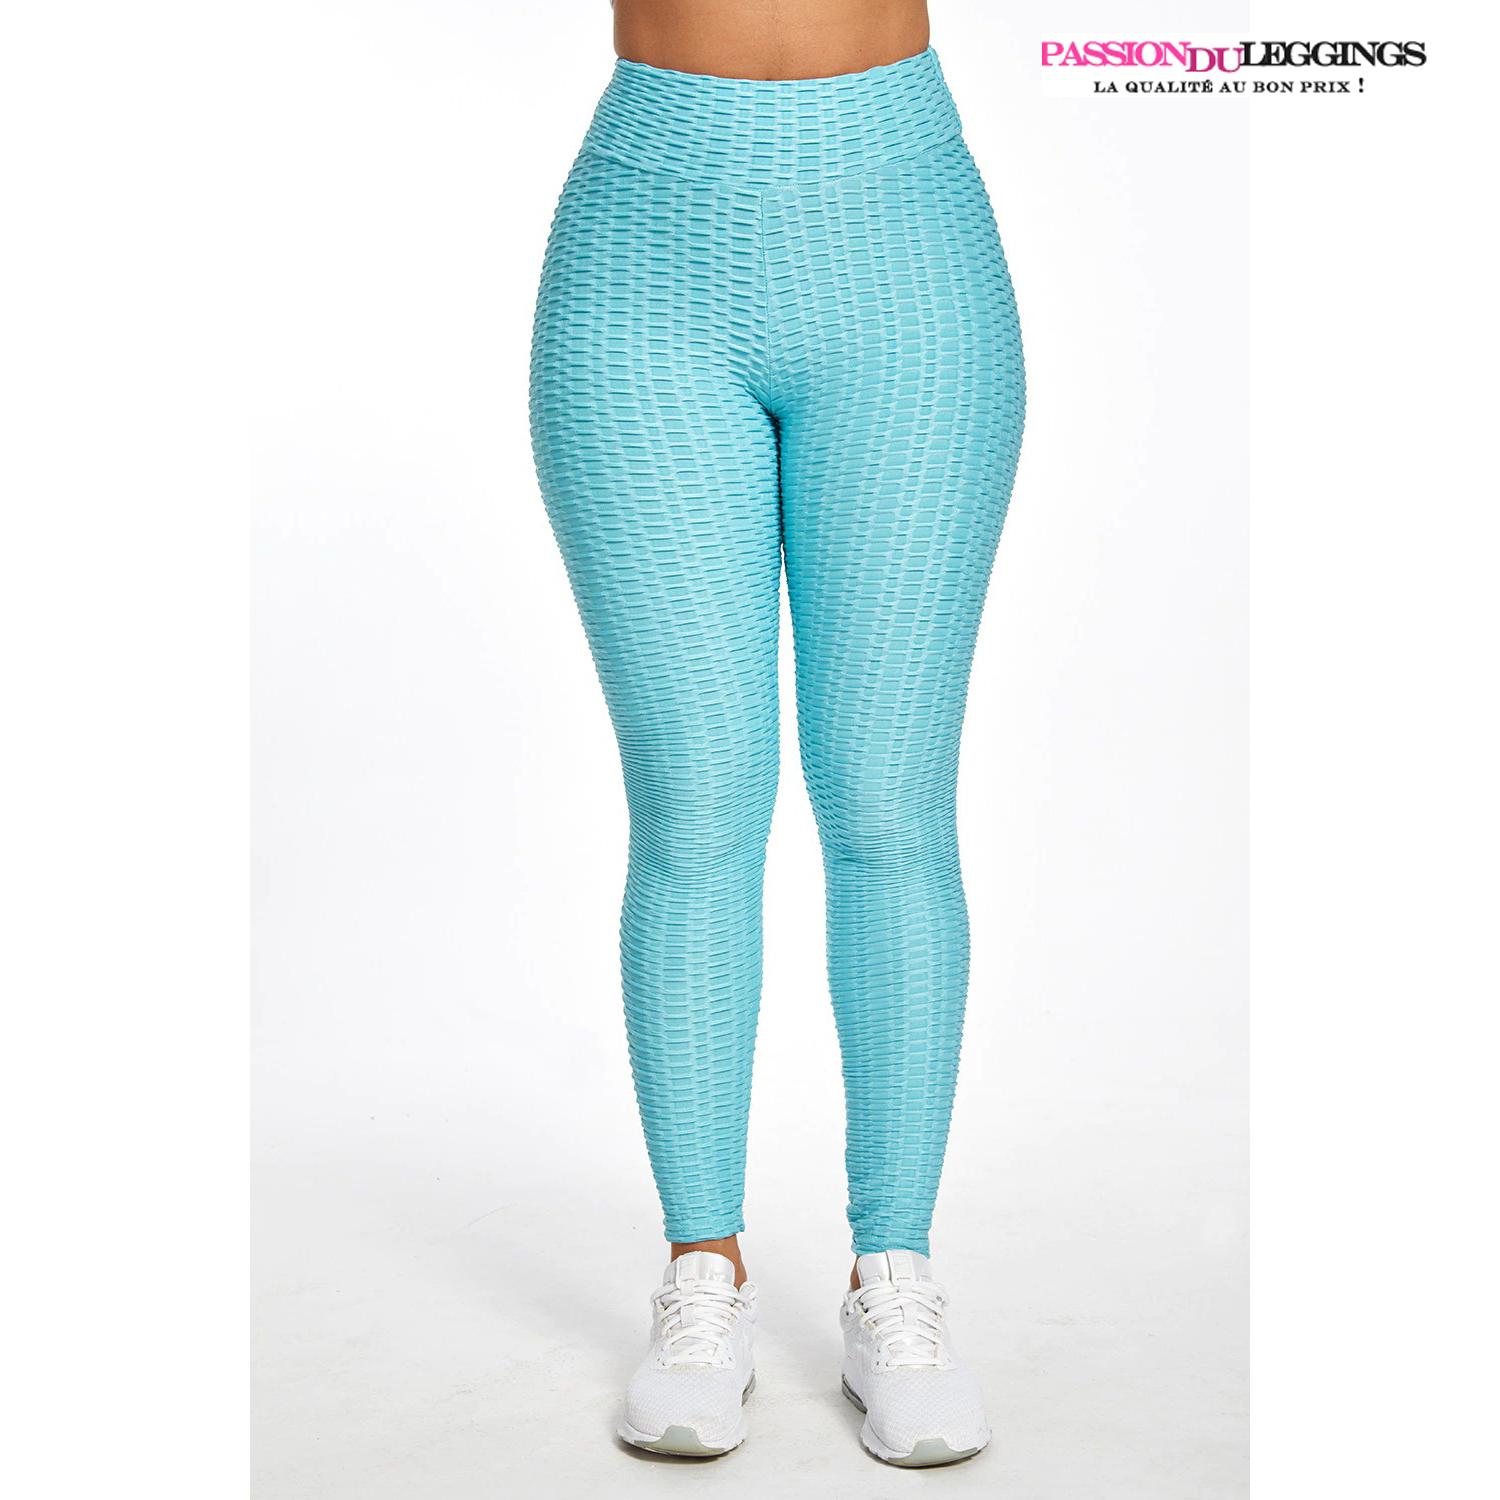 legging anti cellulite, push up, passionduleggings